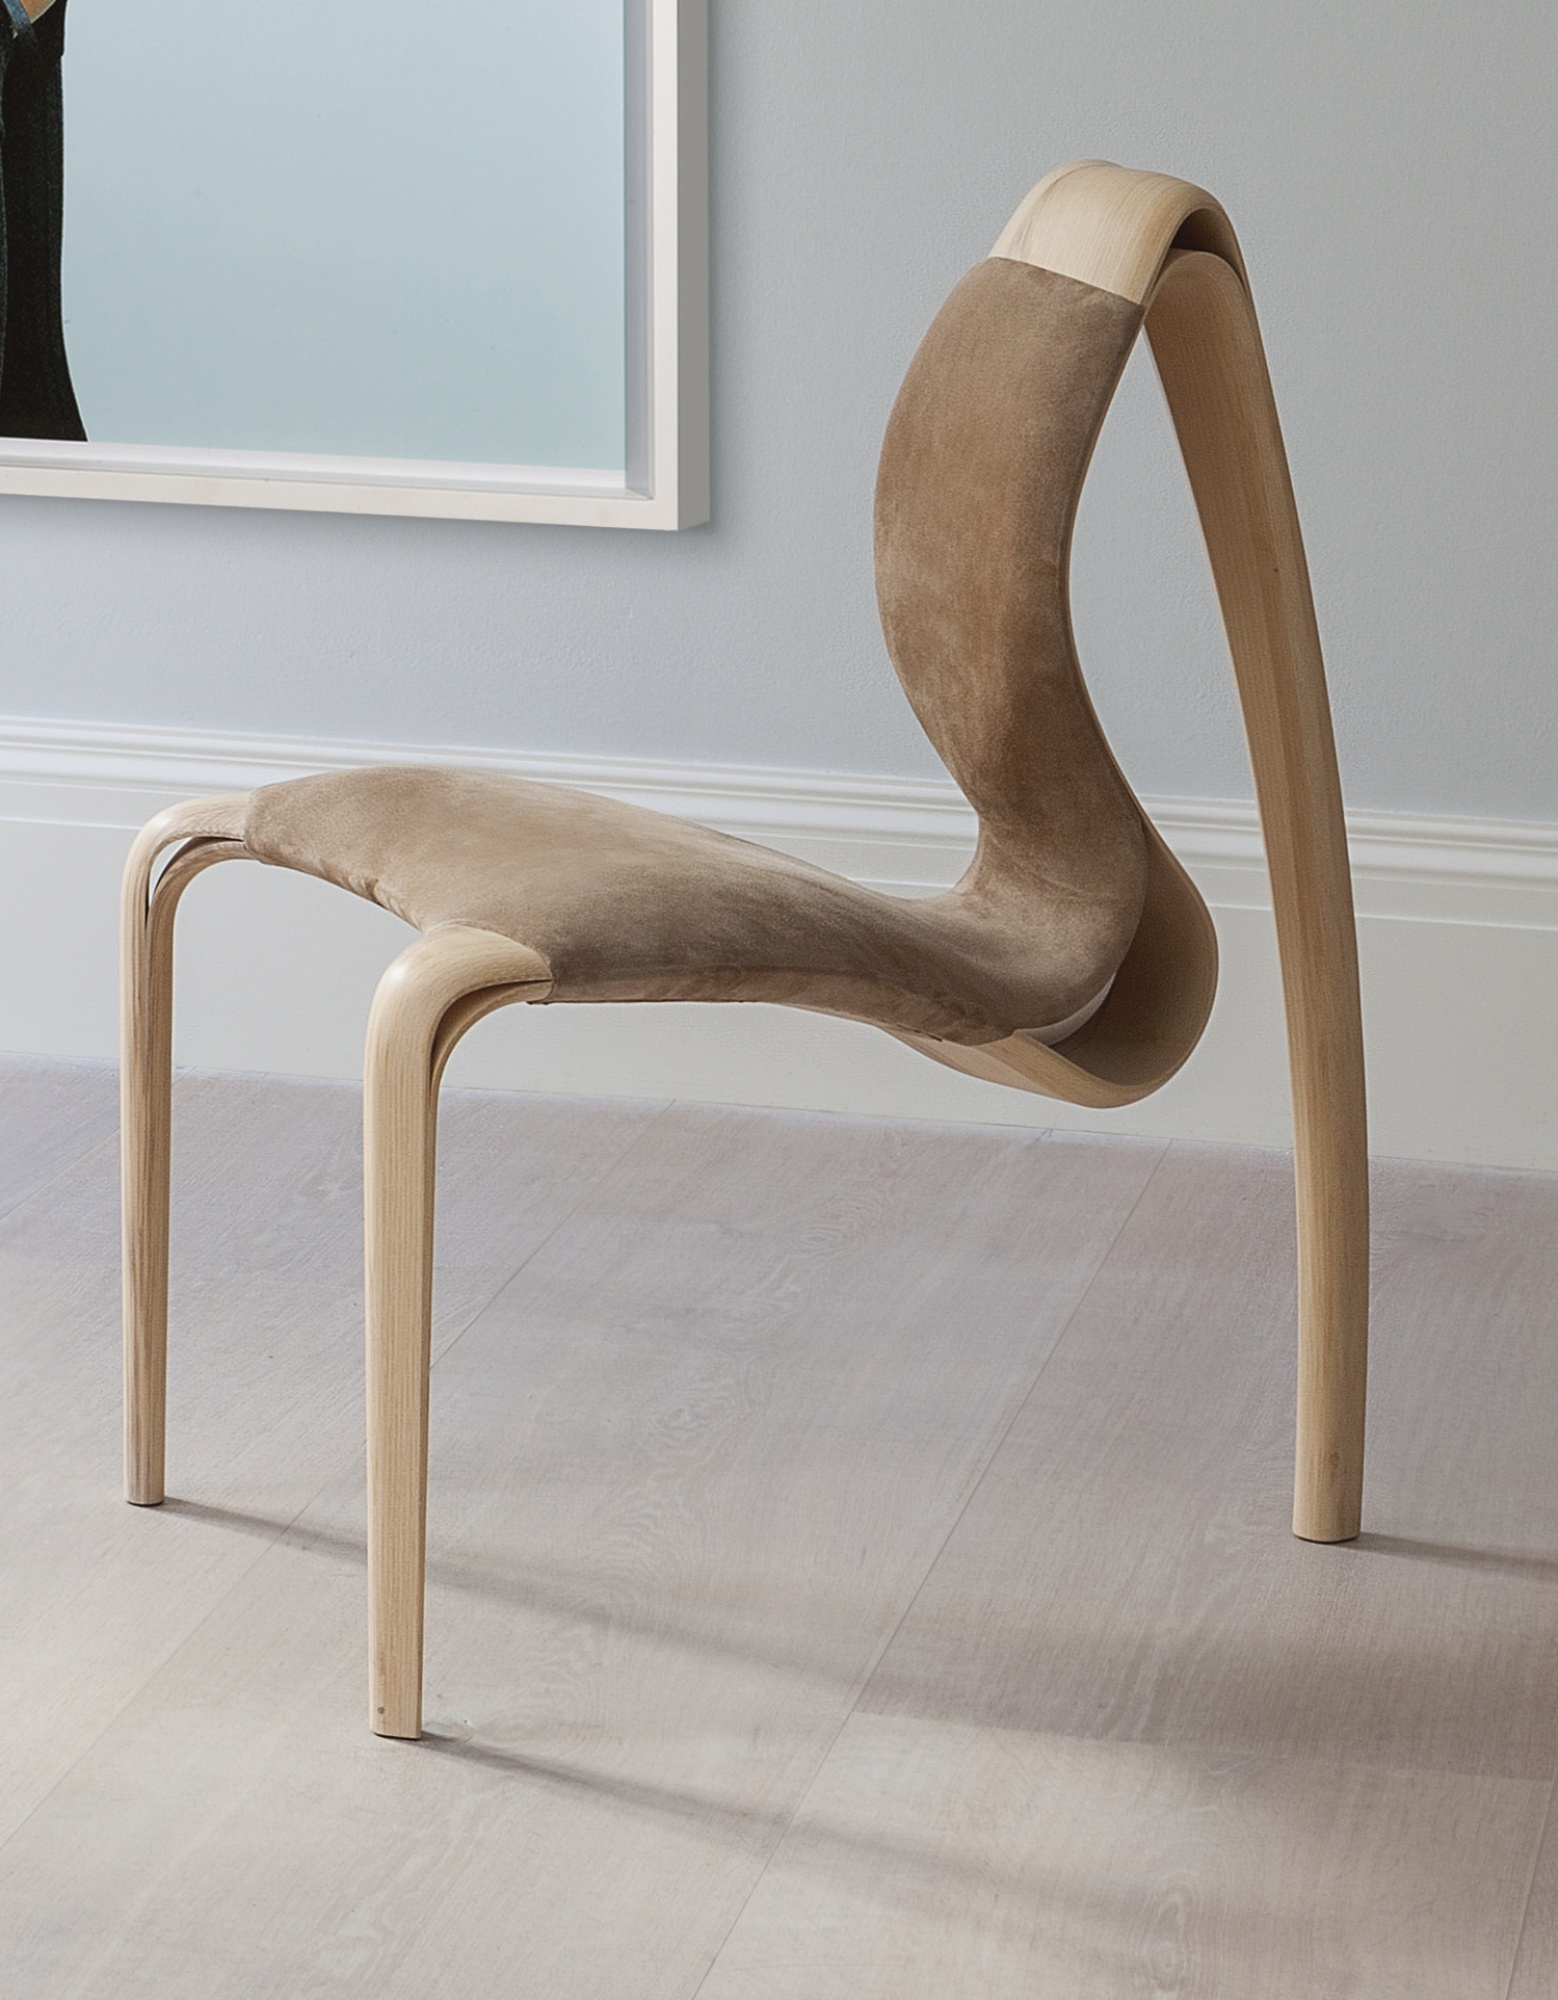 Joseph Walsh - Enignum II Chair-2015